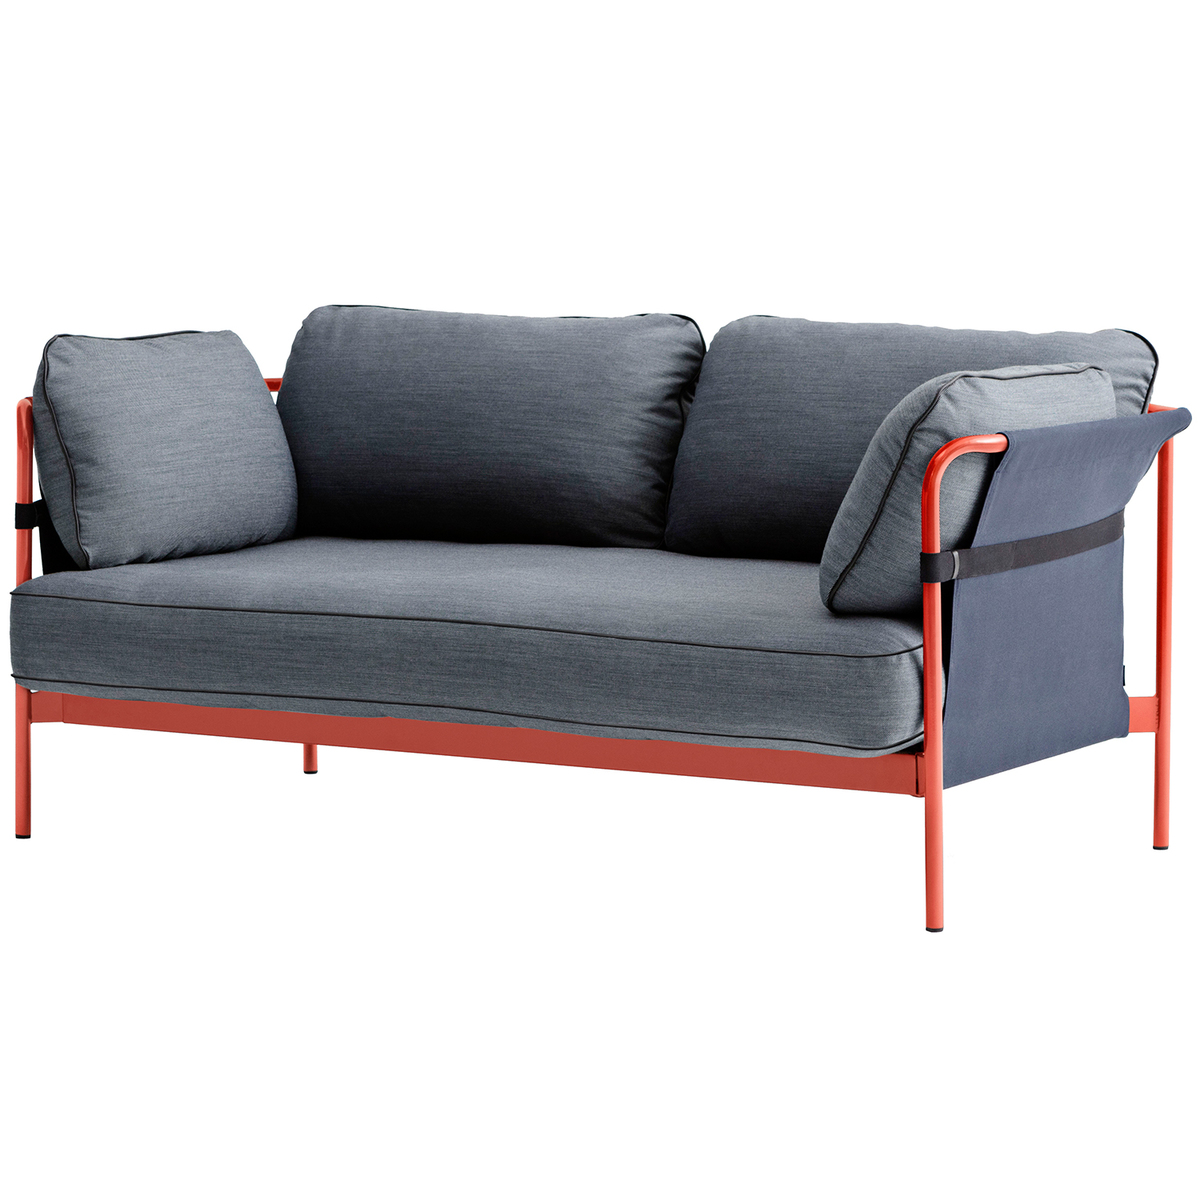 Hay Can sofa 2 seater red blue frame Surface 990